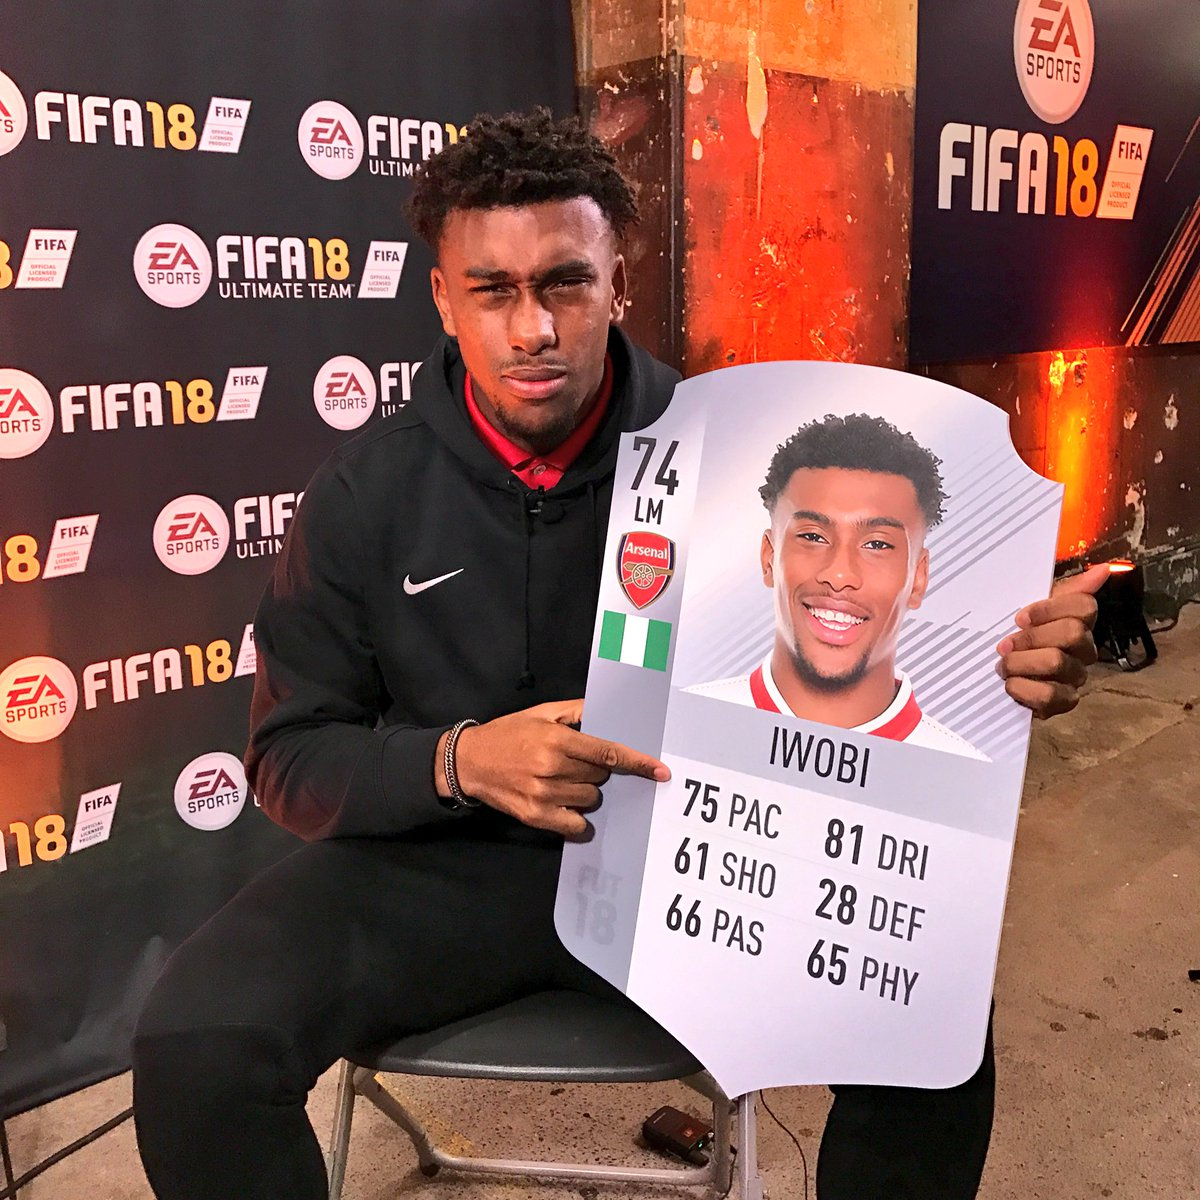 Alex Iwobi REALLY isn't happy with his FIFA 18 rating! 😡  What do you think he deserves? #FIFA18UKLAUNCH